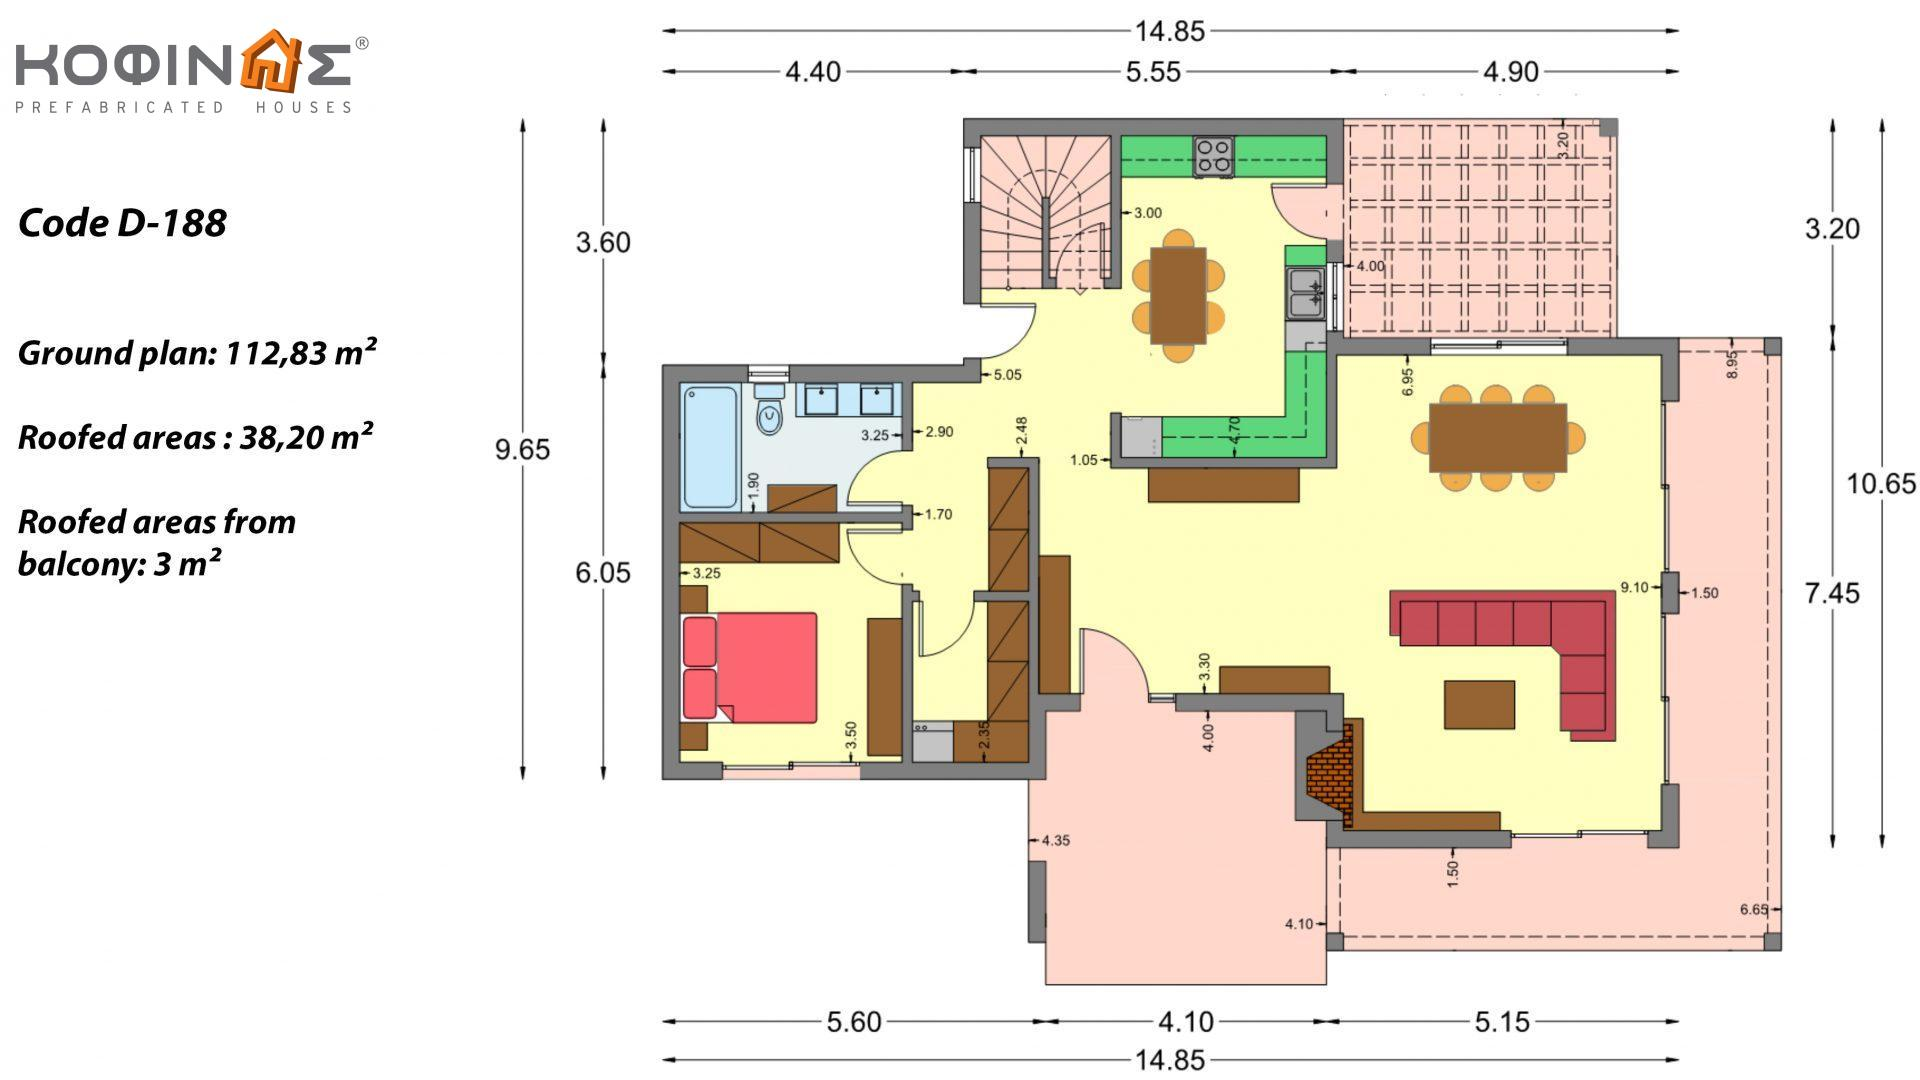 2-story house D-188, total surface of 188,66 m² ,roofed areas 38.20 m²,balconies 40.05 m²